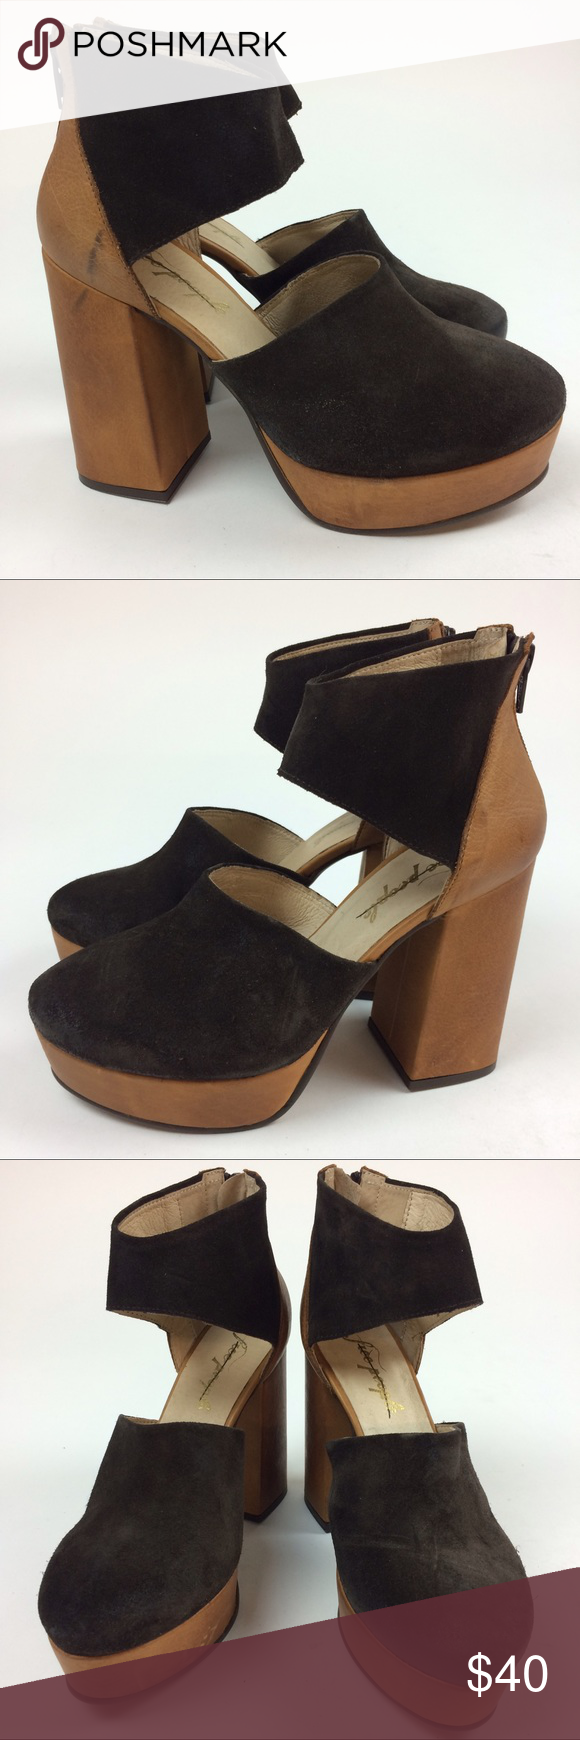 bf72ec6ef38 Free People Luxor Platform Heels Euro 37 These platform heels by Free People  are adorable! They are brand new however have a few scuffs that I did not  ...